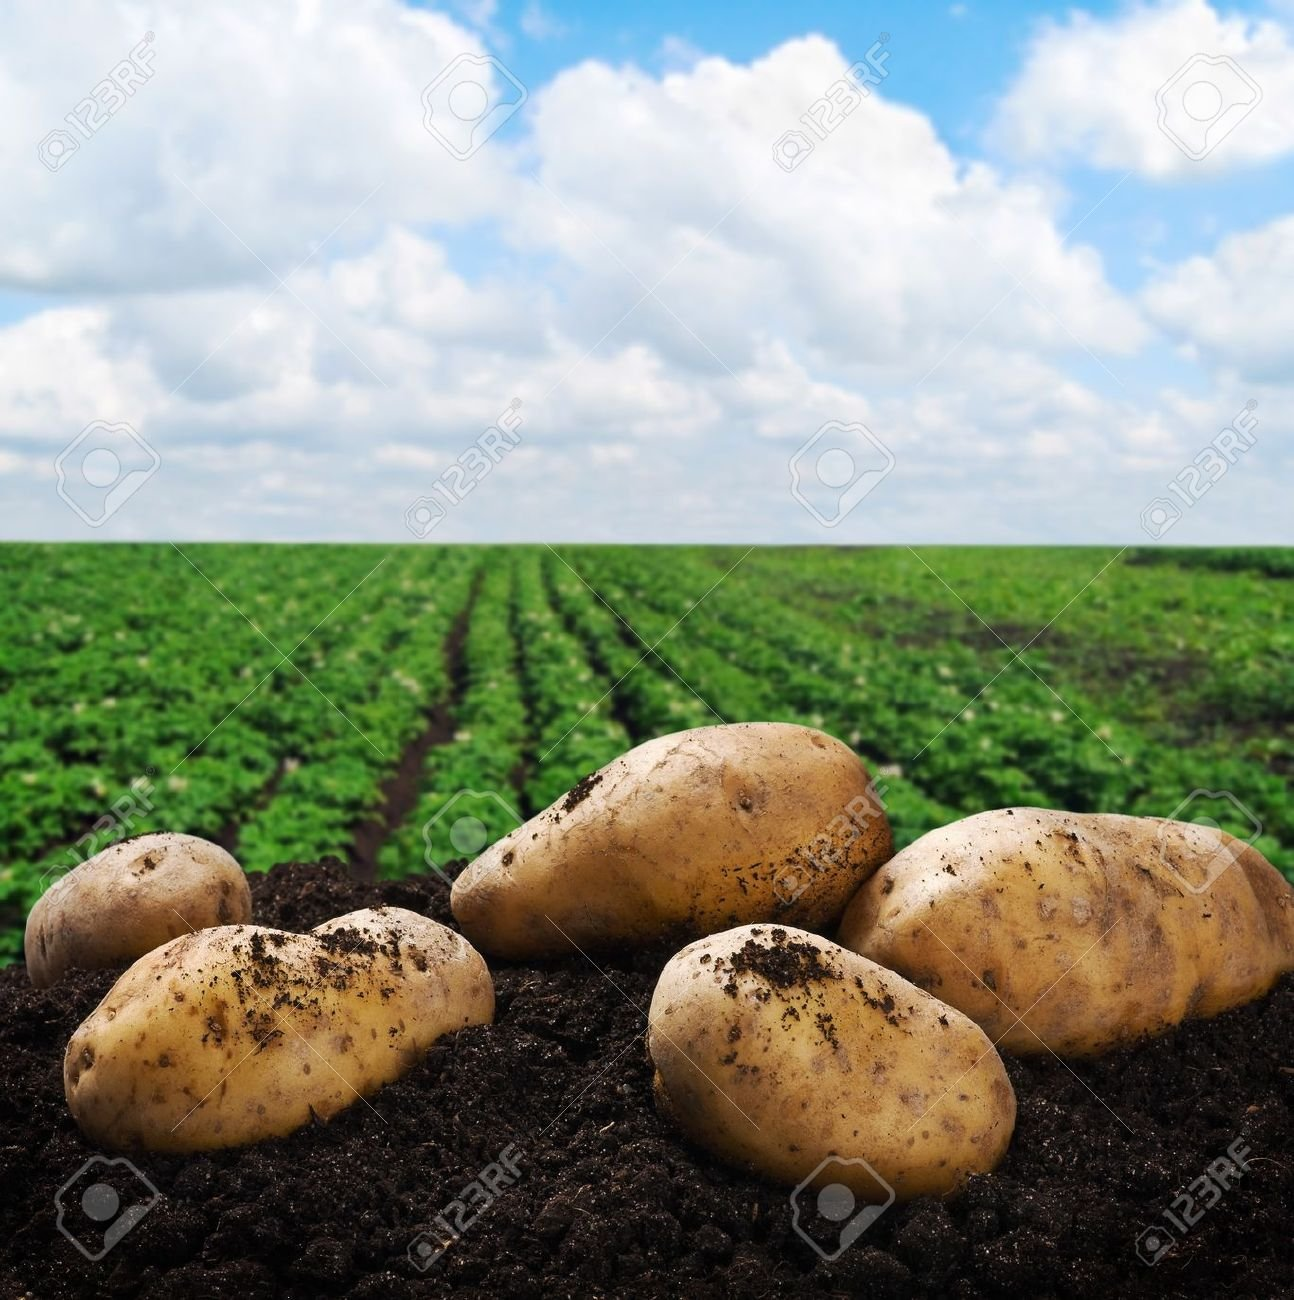 Simply Seed - 5 LB - Yukon Gold Potato Seed - Non GMO - Organic Grown - Order Now for Fall Planting